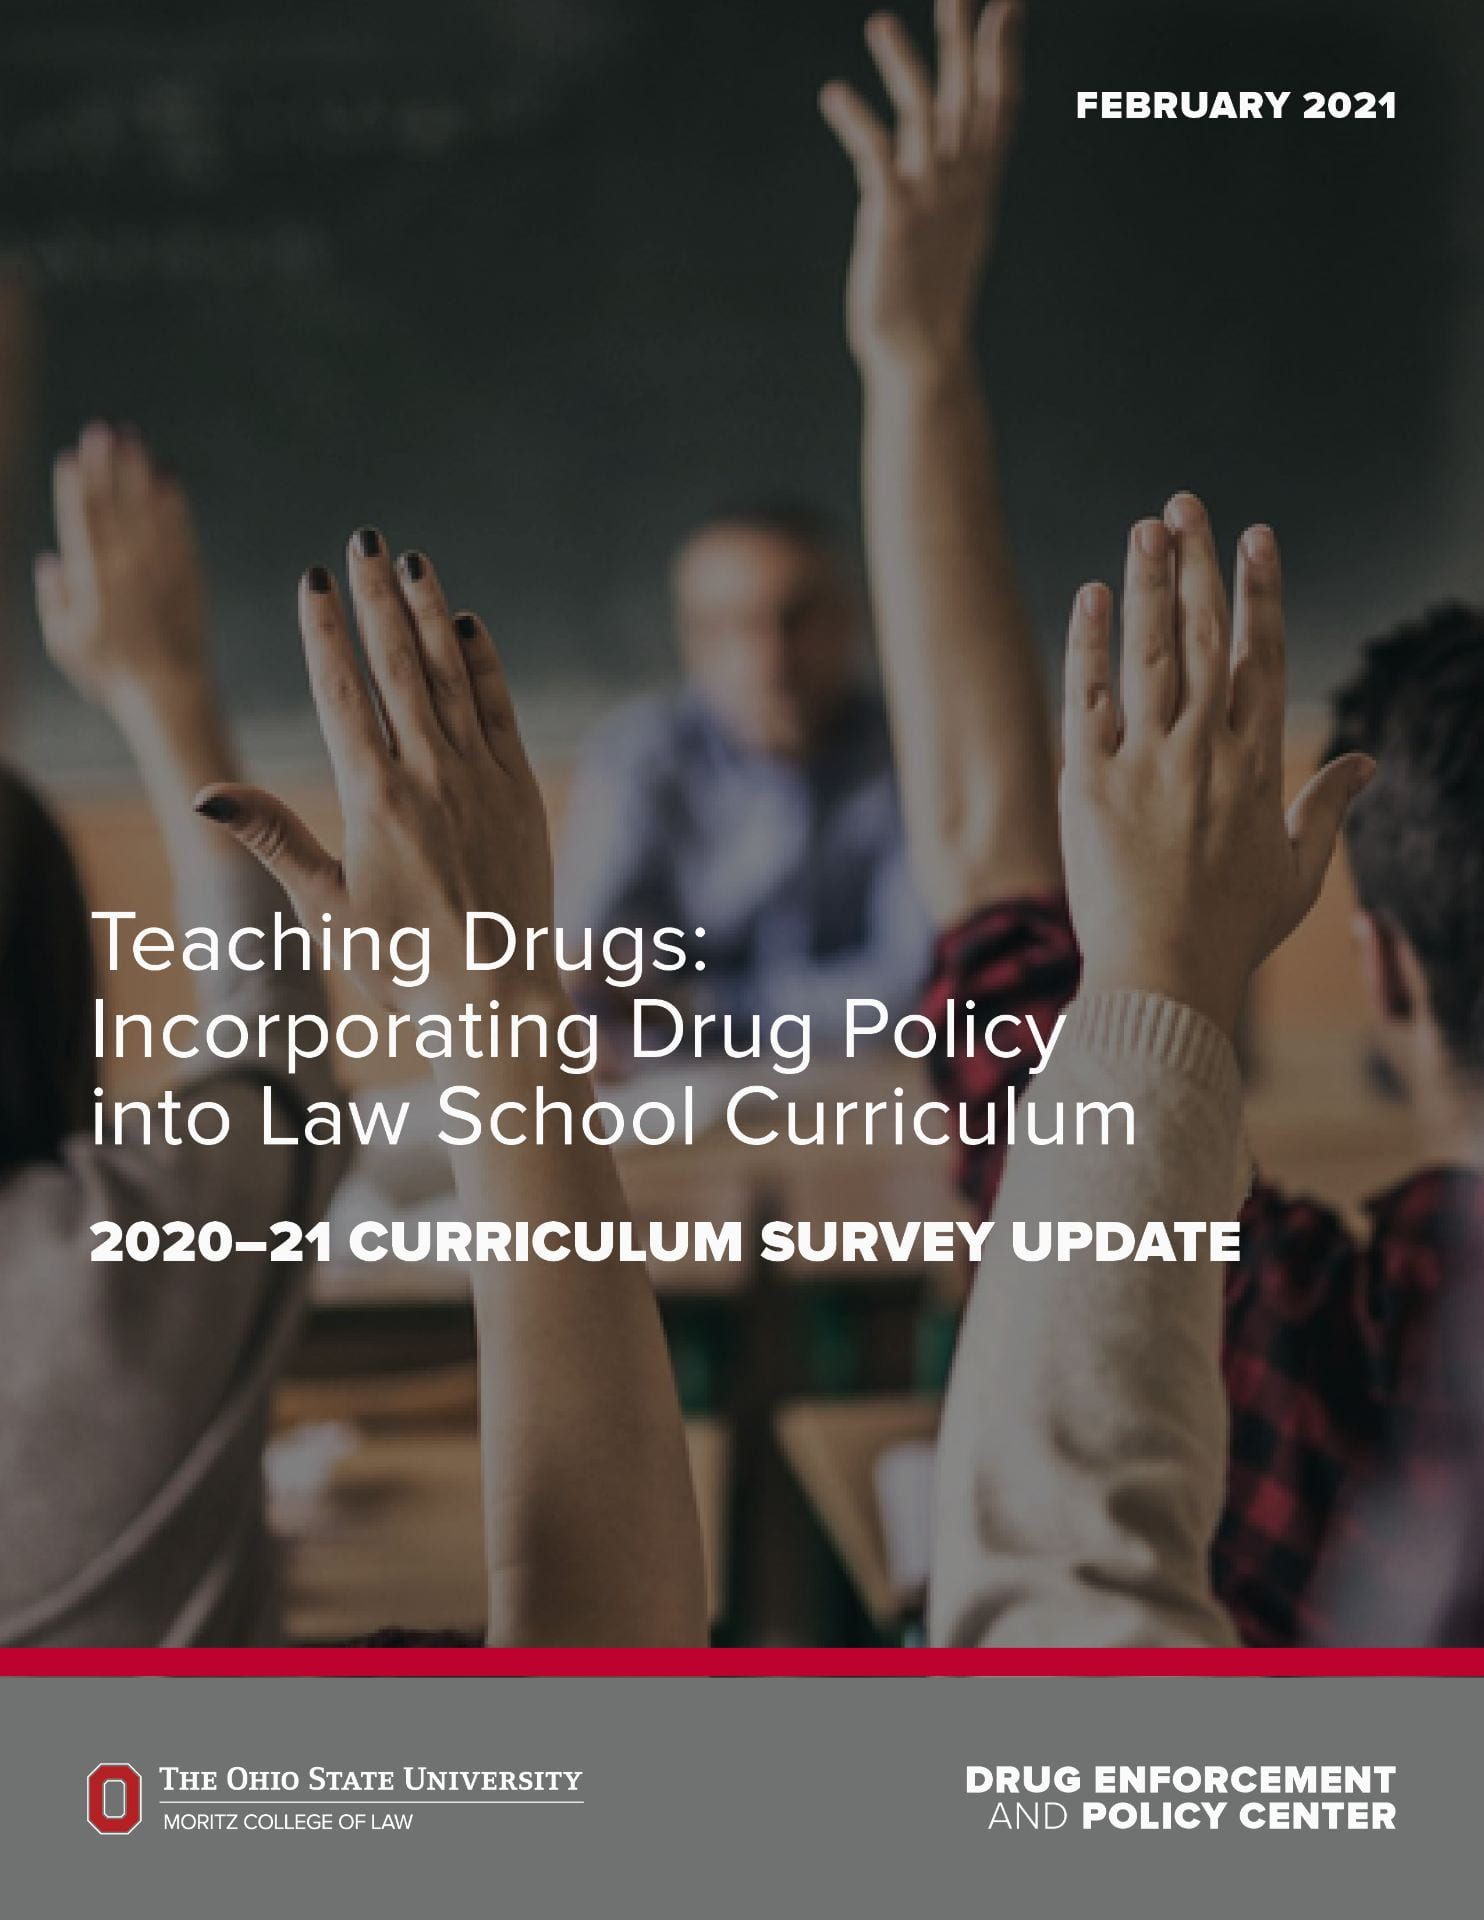 Teaching Drugs: Incorporating Drug Policy into Law School Curriculum, 2020-21 Curriculum Survey Update